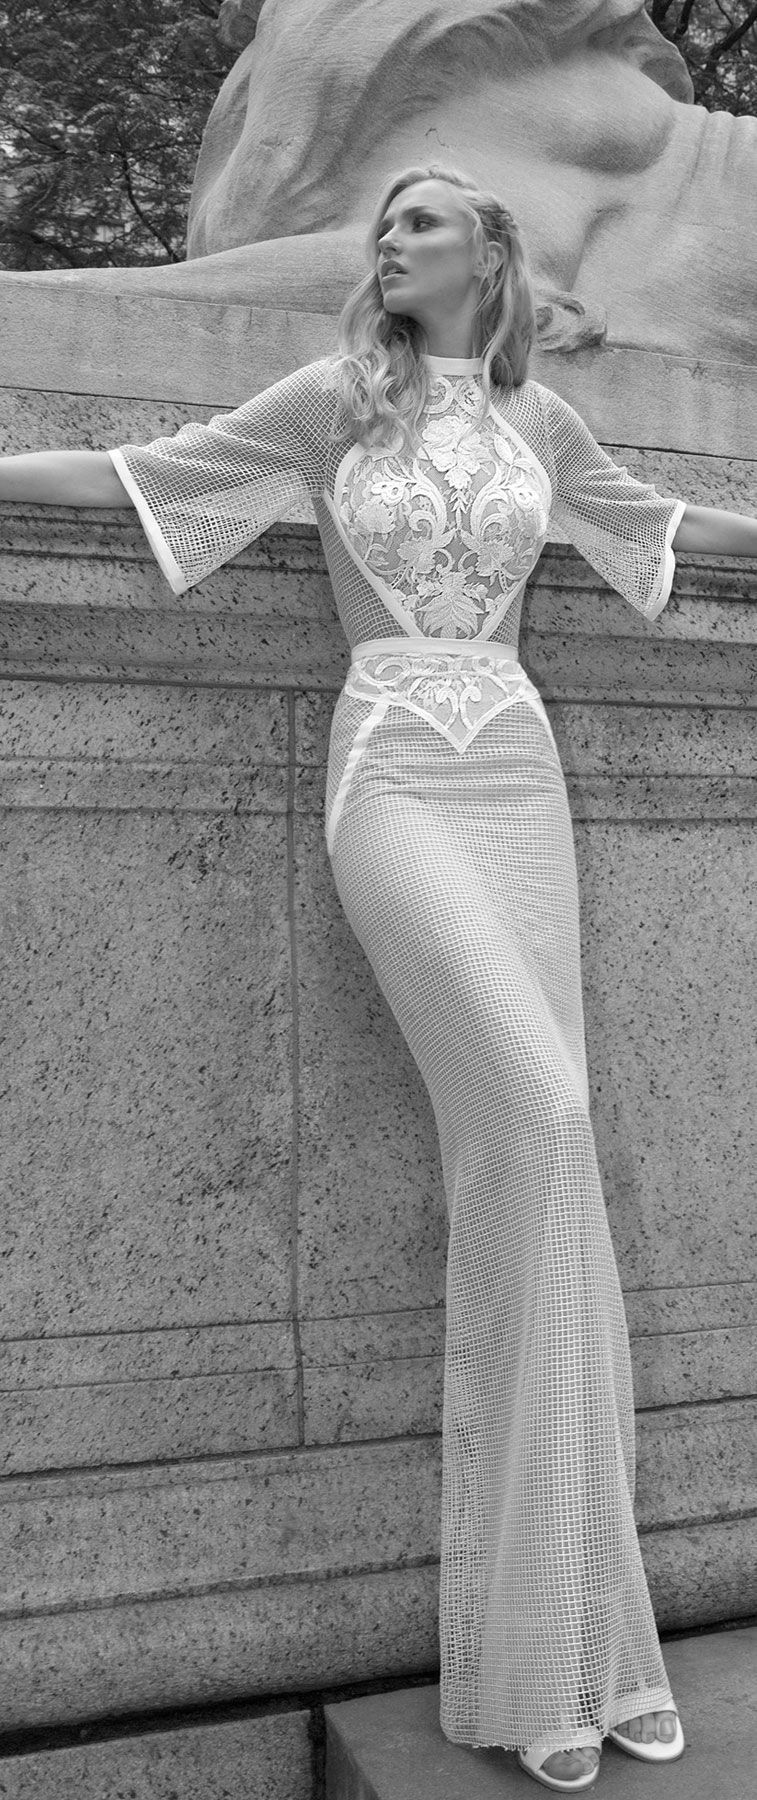 Lior Charchy NYC 2017 3/4 length sleeves fully embellishment sheath wedding dress lior charchy bridal #wedding #weddings #bride #bridaldress #weddinggown